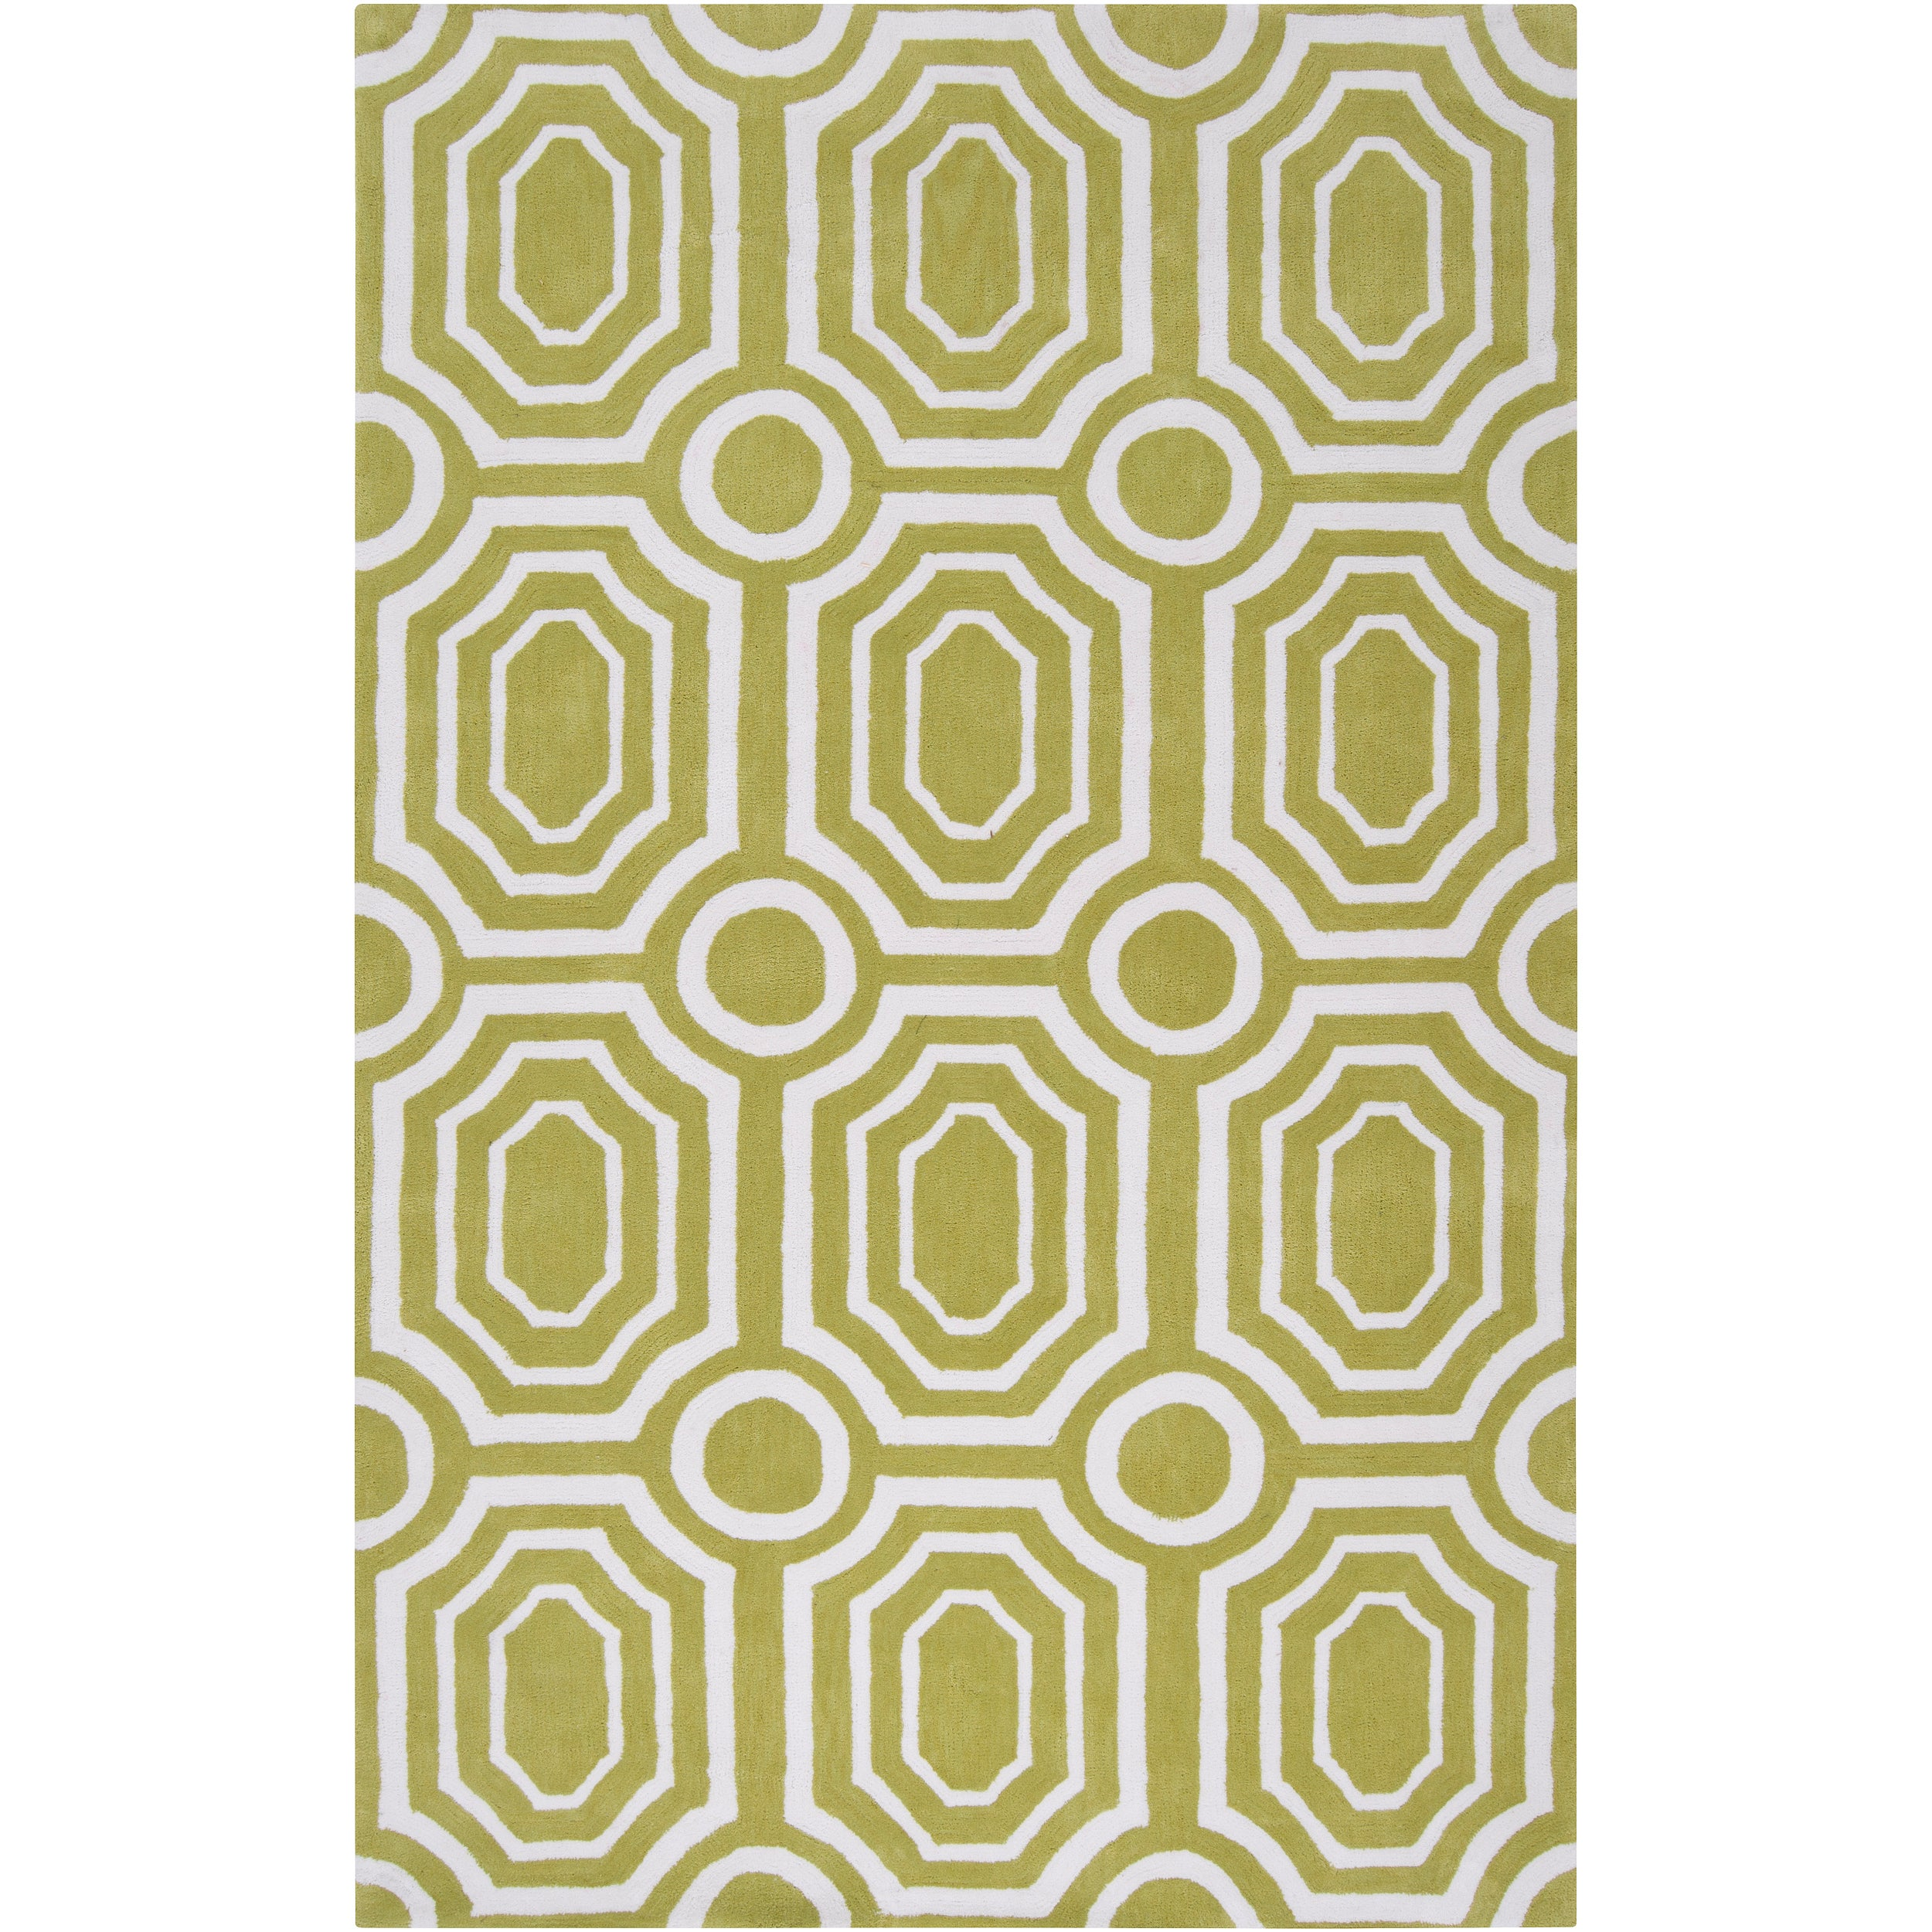 Hand-tufted Green Hudson Park Area Rug (8' x 10')